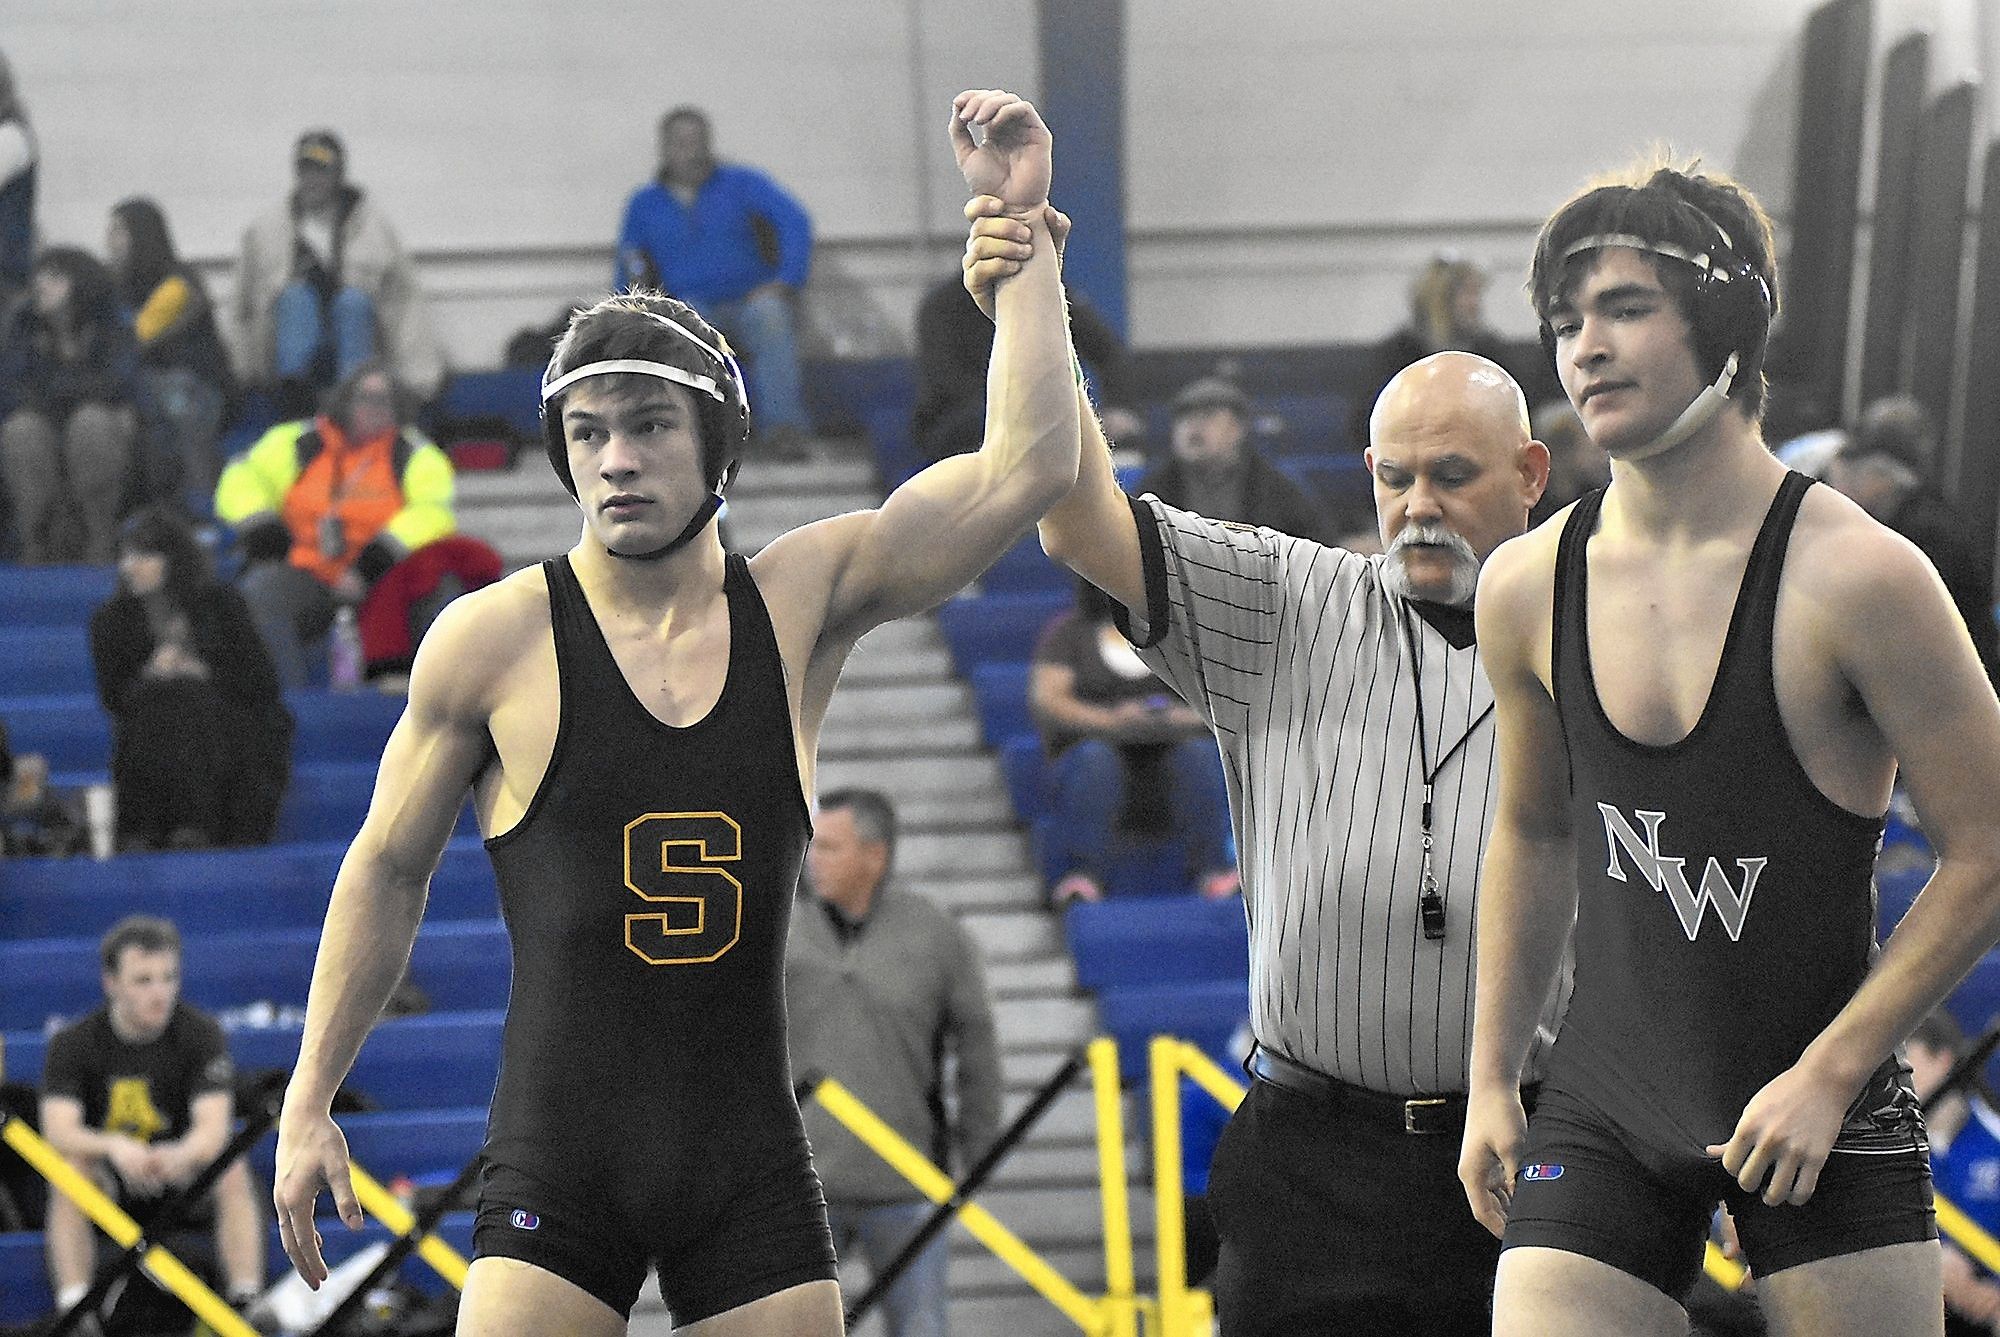 Stevenson Wrestler Dylan Geick I Am Not Alone As A Gay High School Athlete Lincolnshire Review